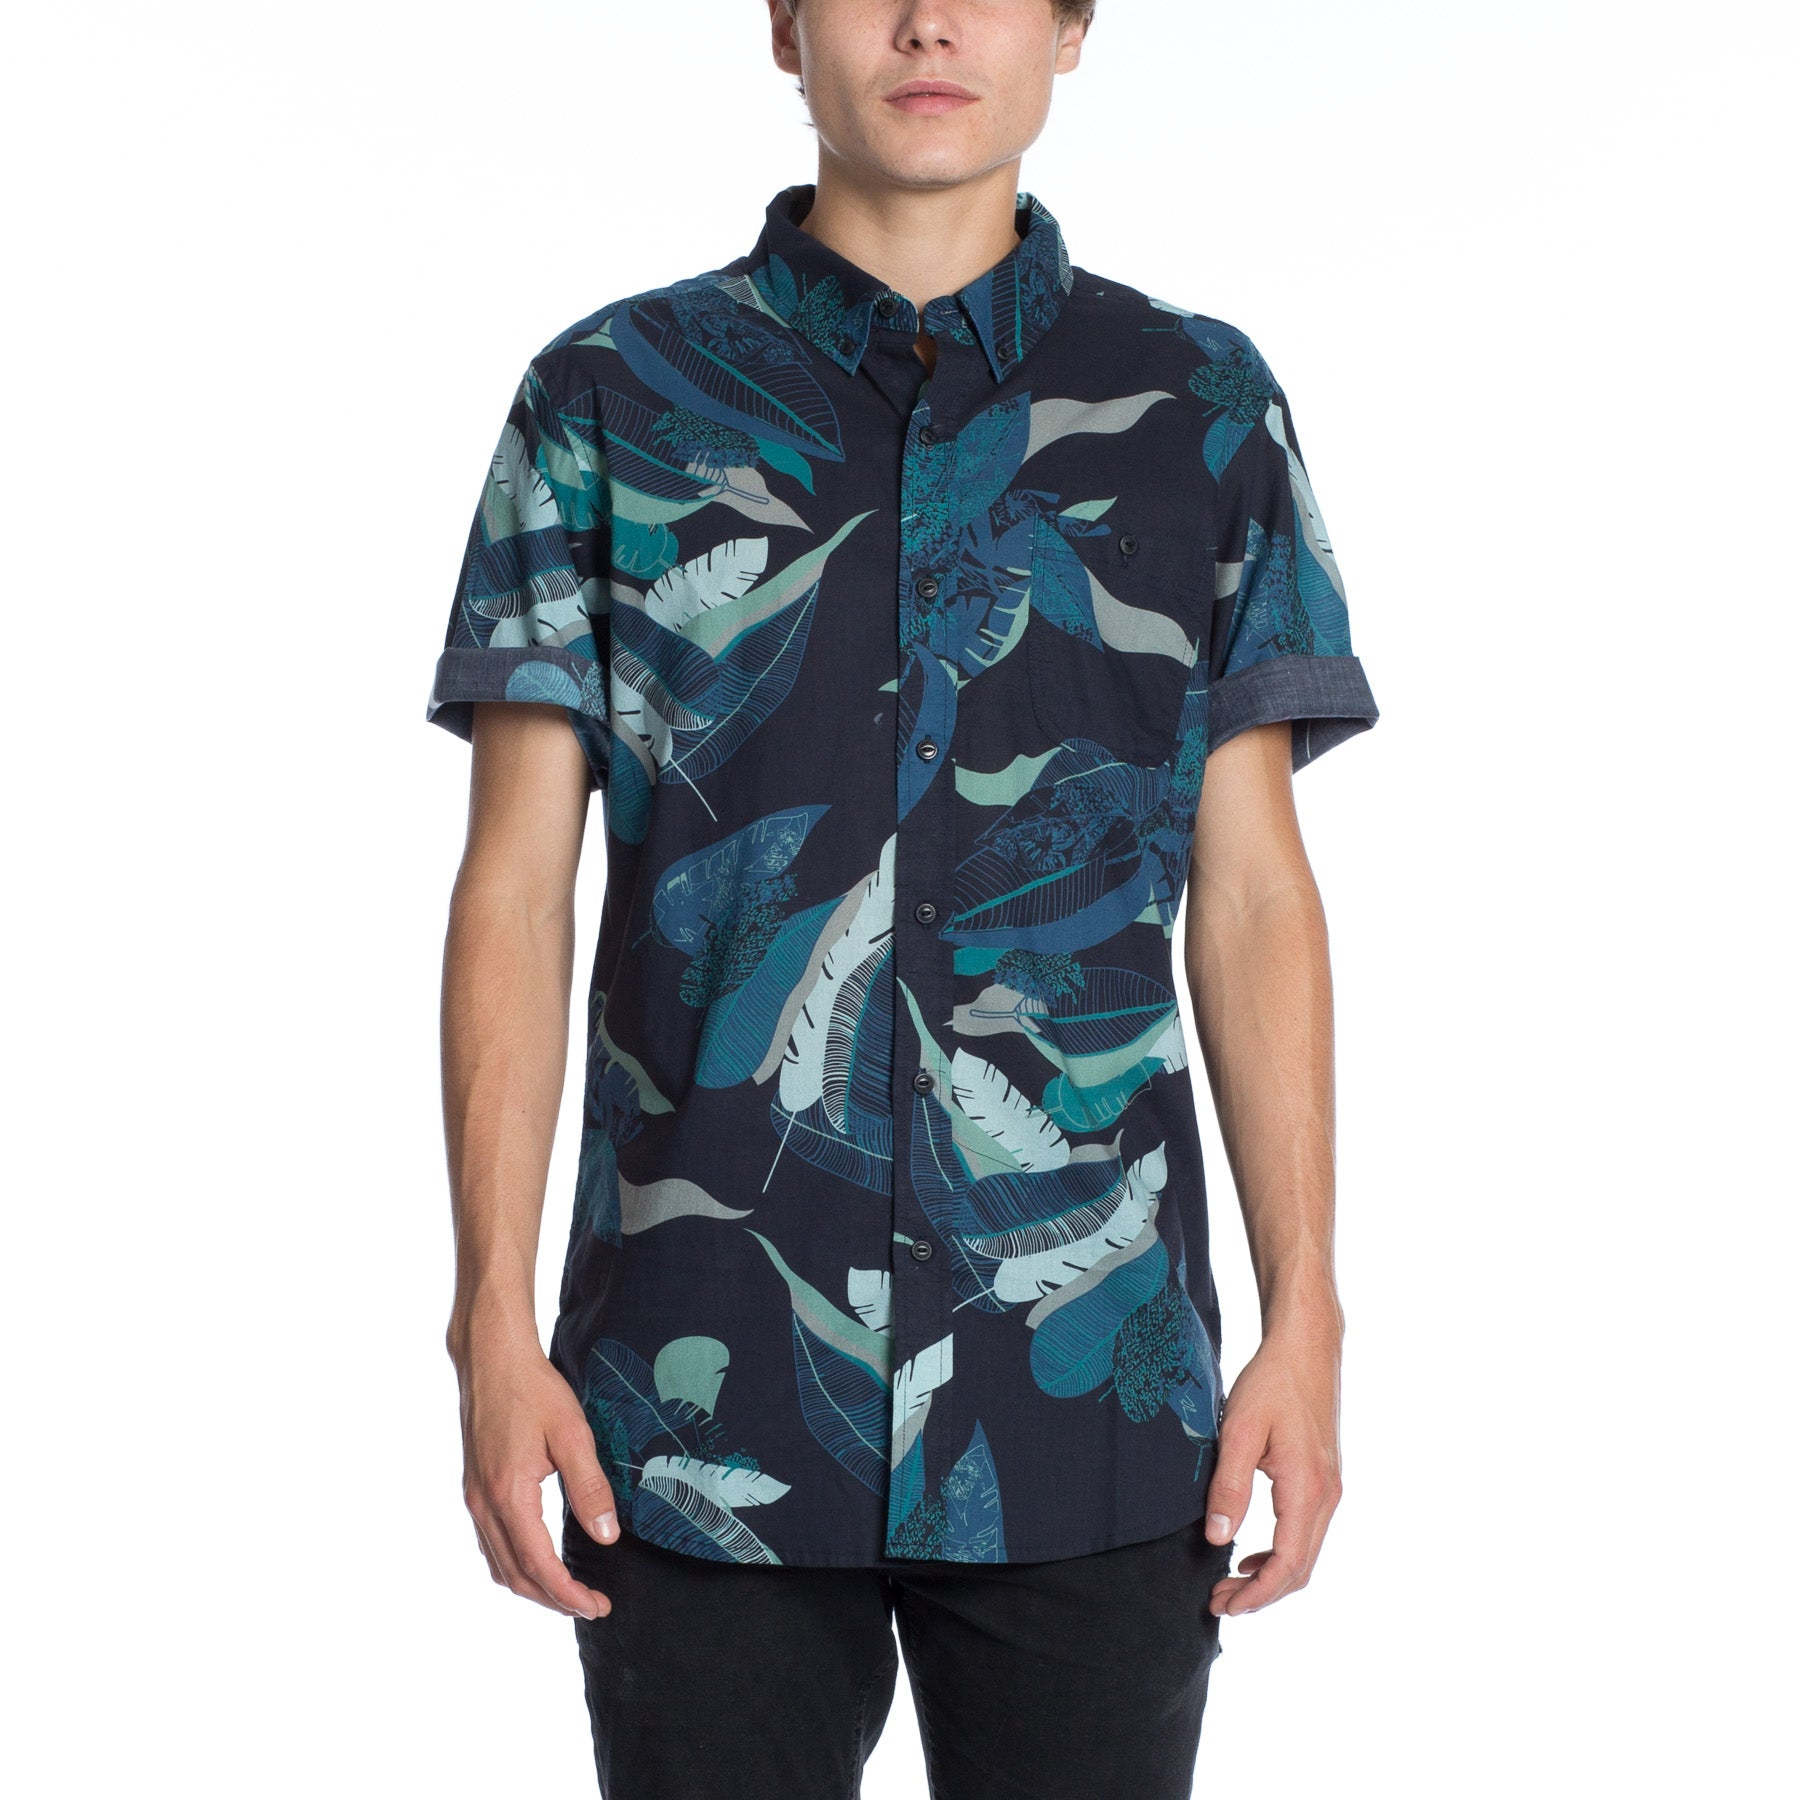 Tropic Thunder Shirt - Black